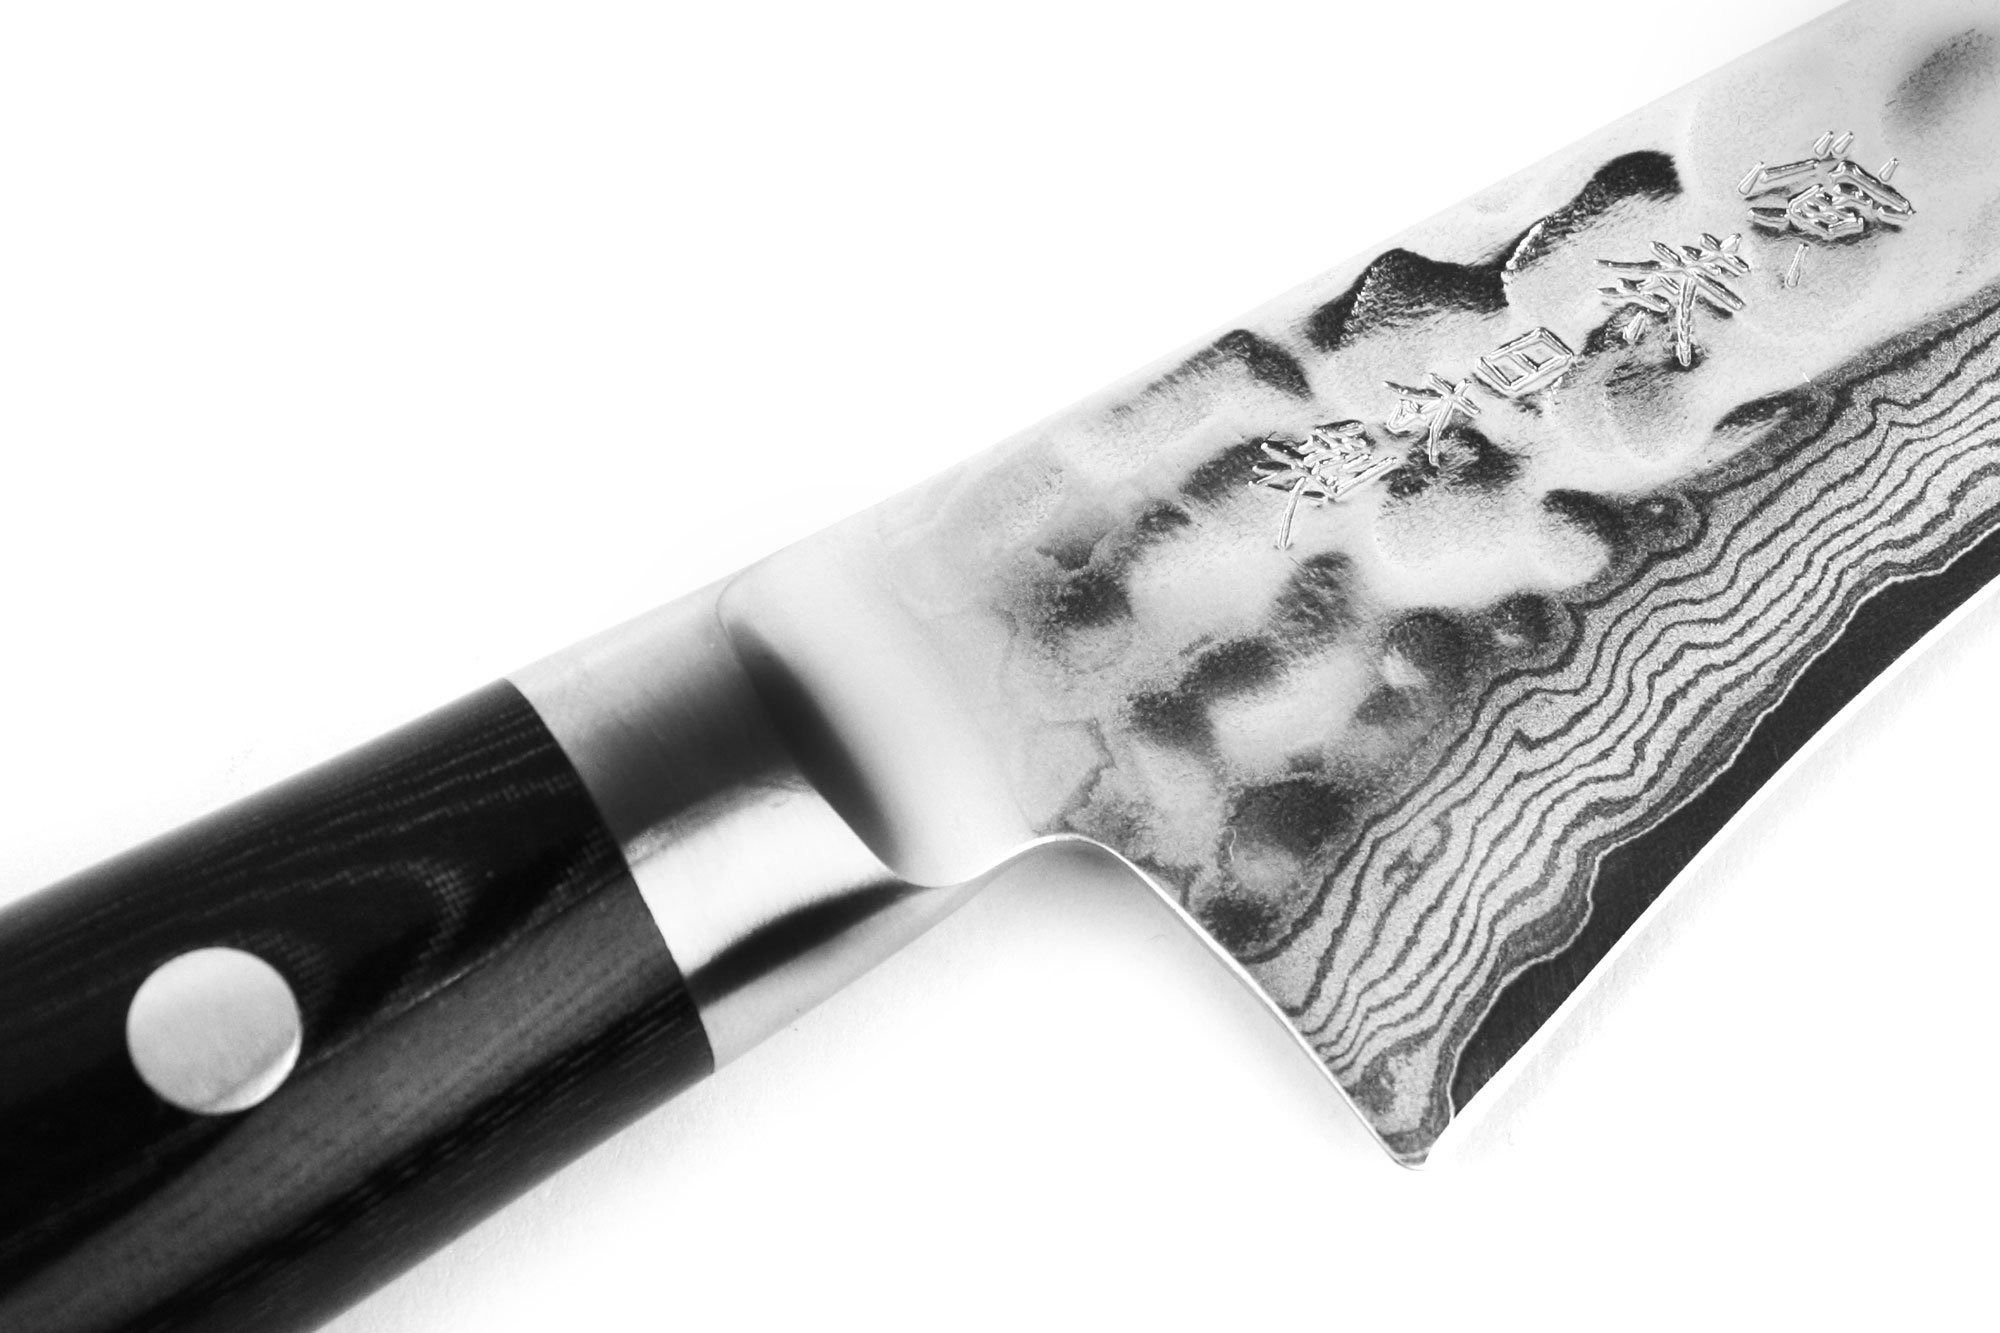 Enso HD 6'' Boning Knife - Made in Japan - VG10 Hammered Damascus Stainless Steel by Enso (Image #3)